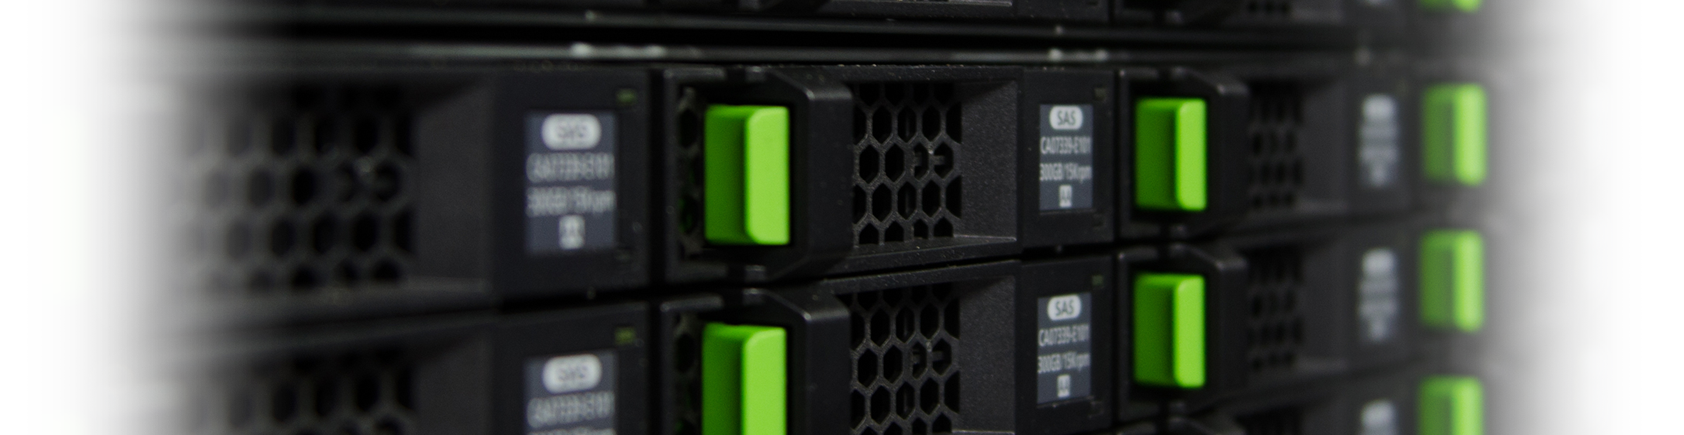 Improving Data Centers' Energy Reliability & Efficiency